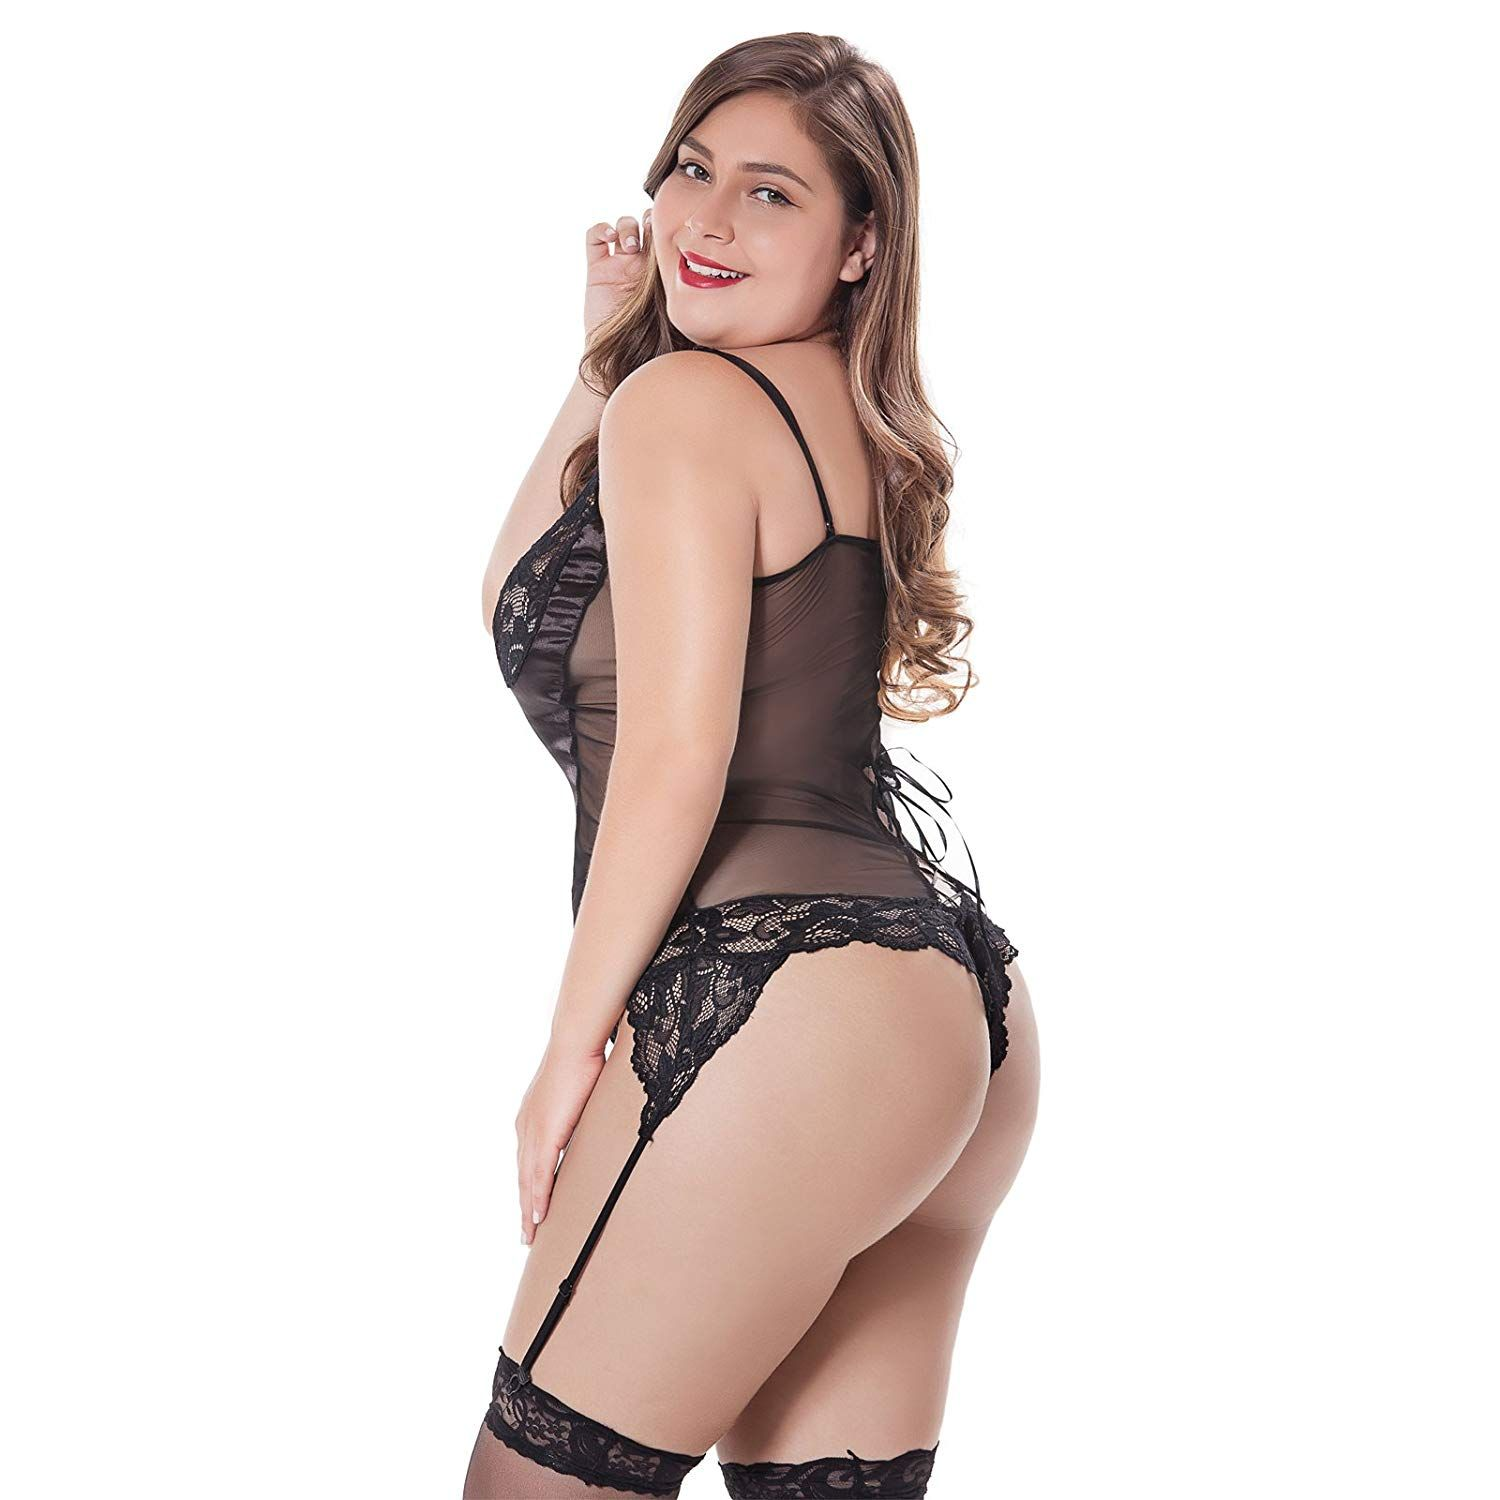 bec0b8a34704d Sexy Women's Lingerie Set Plus Size – Includes Garter, Stockings and Lace  Eye Mask Blindfold, Handcuffs, Necklace Accessories. Our products are  developed ...